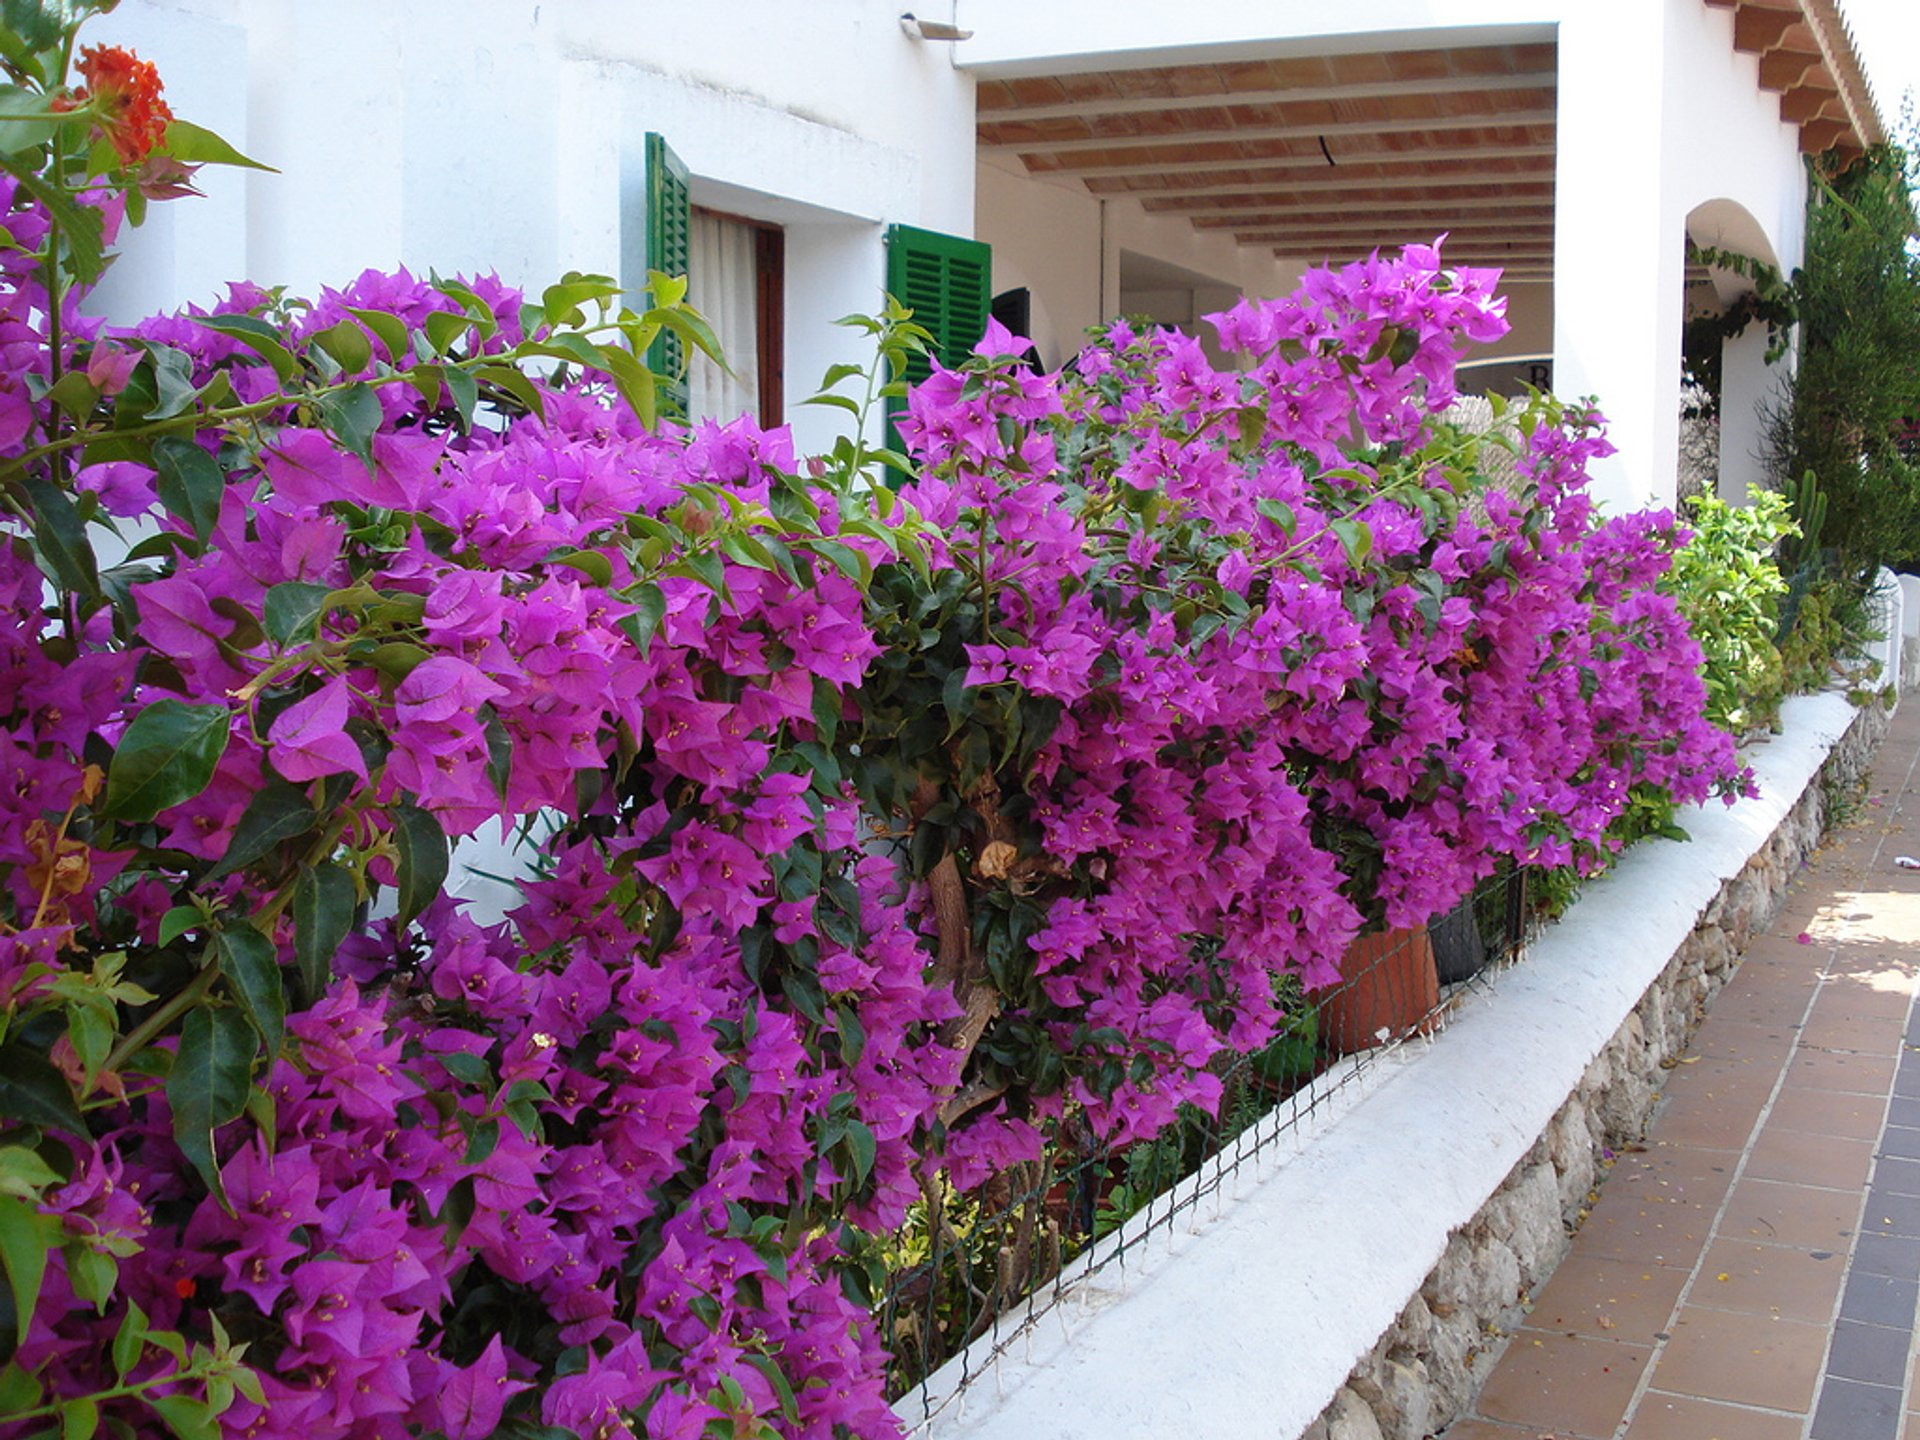 Bougainvillea Bloom in Mallorca - Best Season 2020